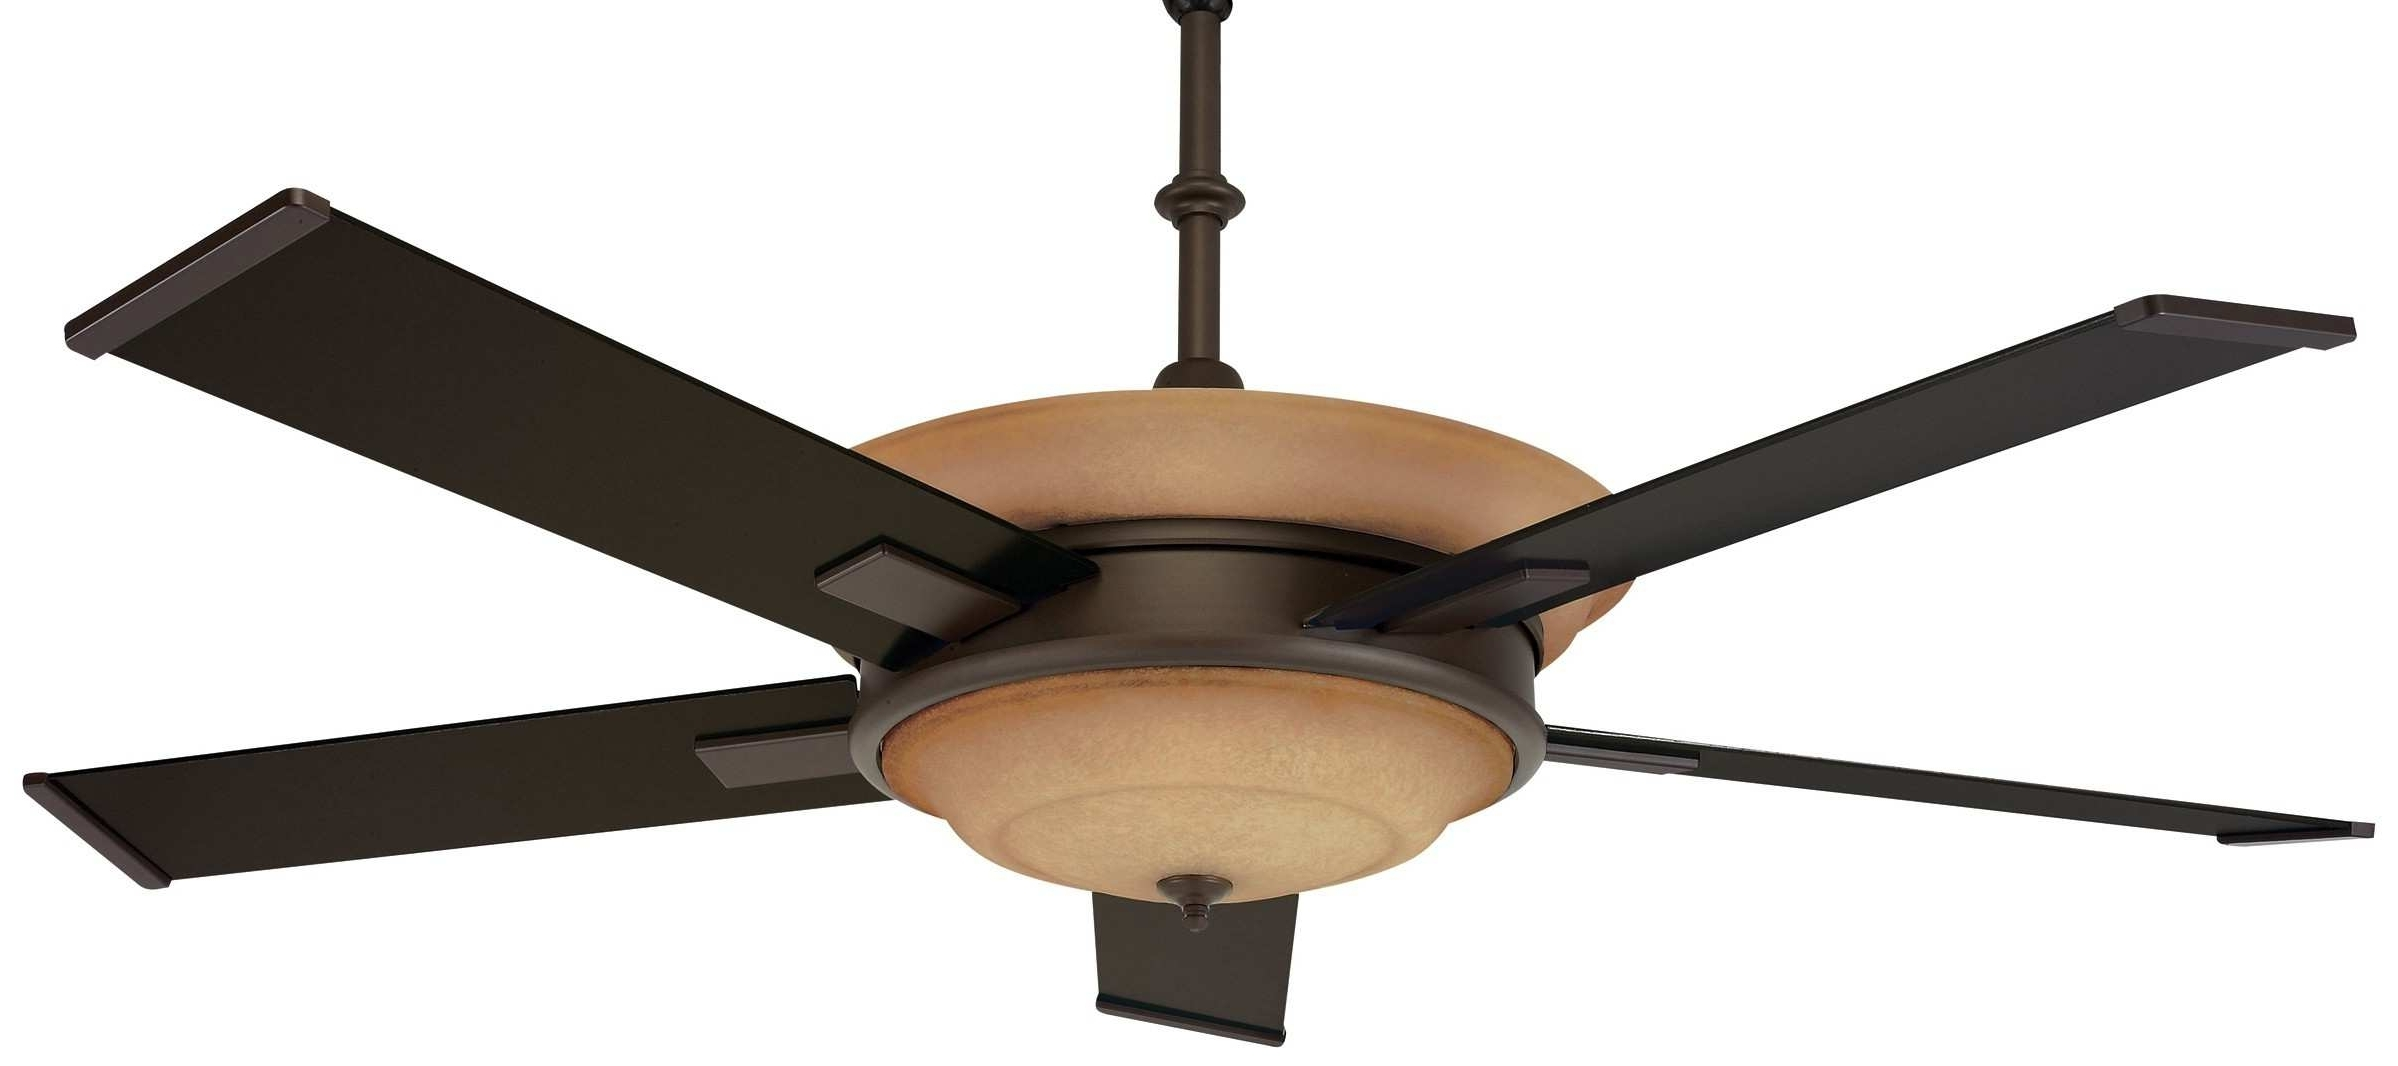 2018 Outdoor Ceiling Fans With Uplights Inside Ceiling Fan With Uplight And Downlight Beautiful Outdoor Concord (View 6 of 20)